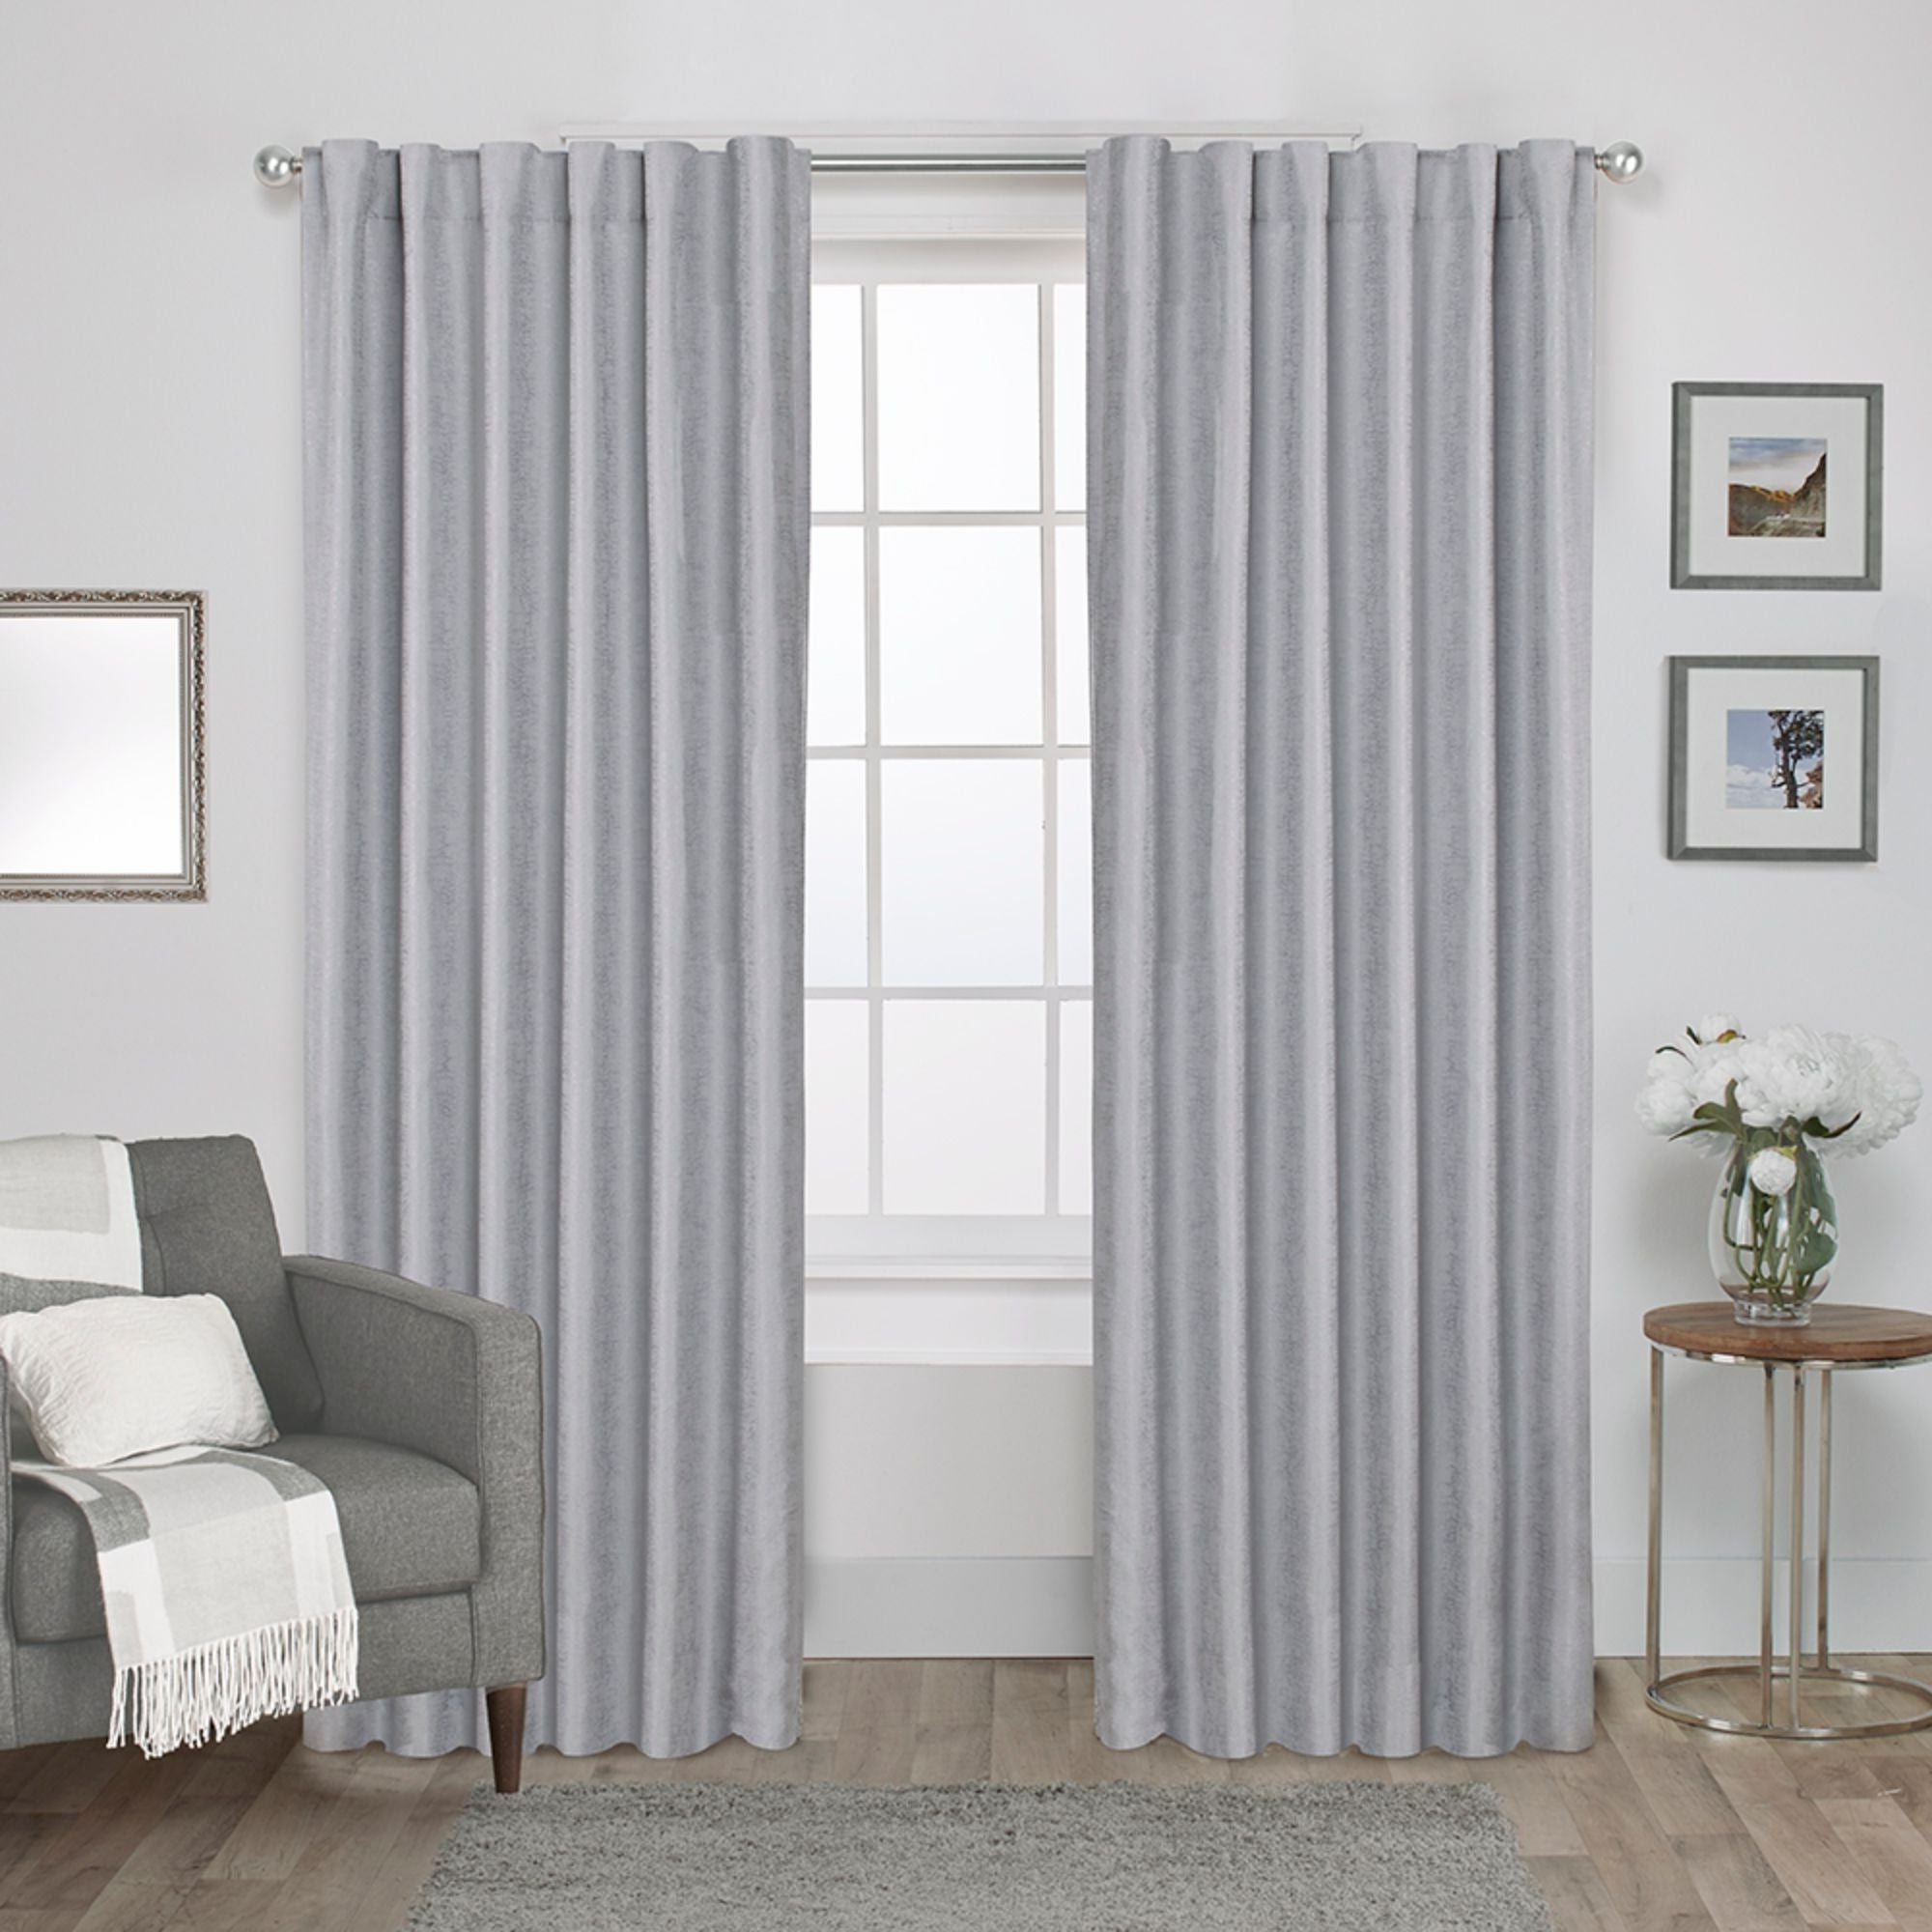 Ati Home Zeus Thermal Woven Blackout Back Tab Top Curtain Panel Pair In Popular Cyrus Thermal Blackout Back Tab Curtain Panels (View 6 of 20)